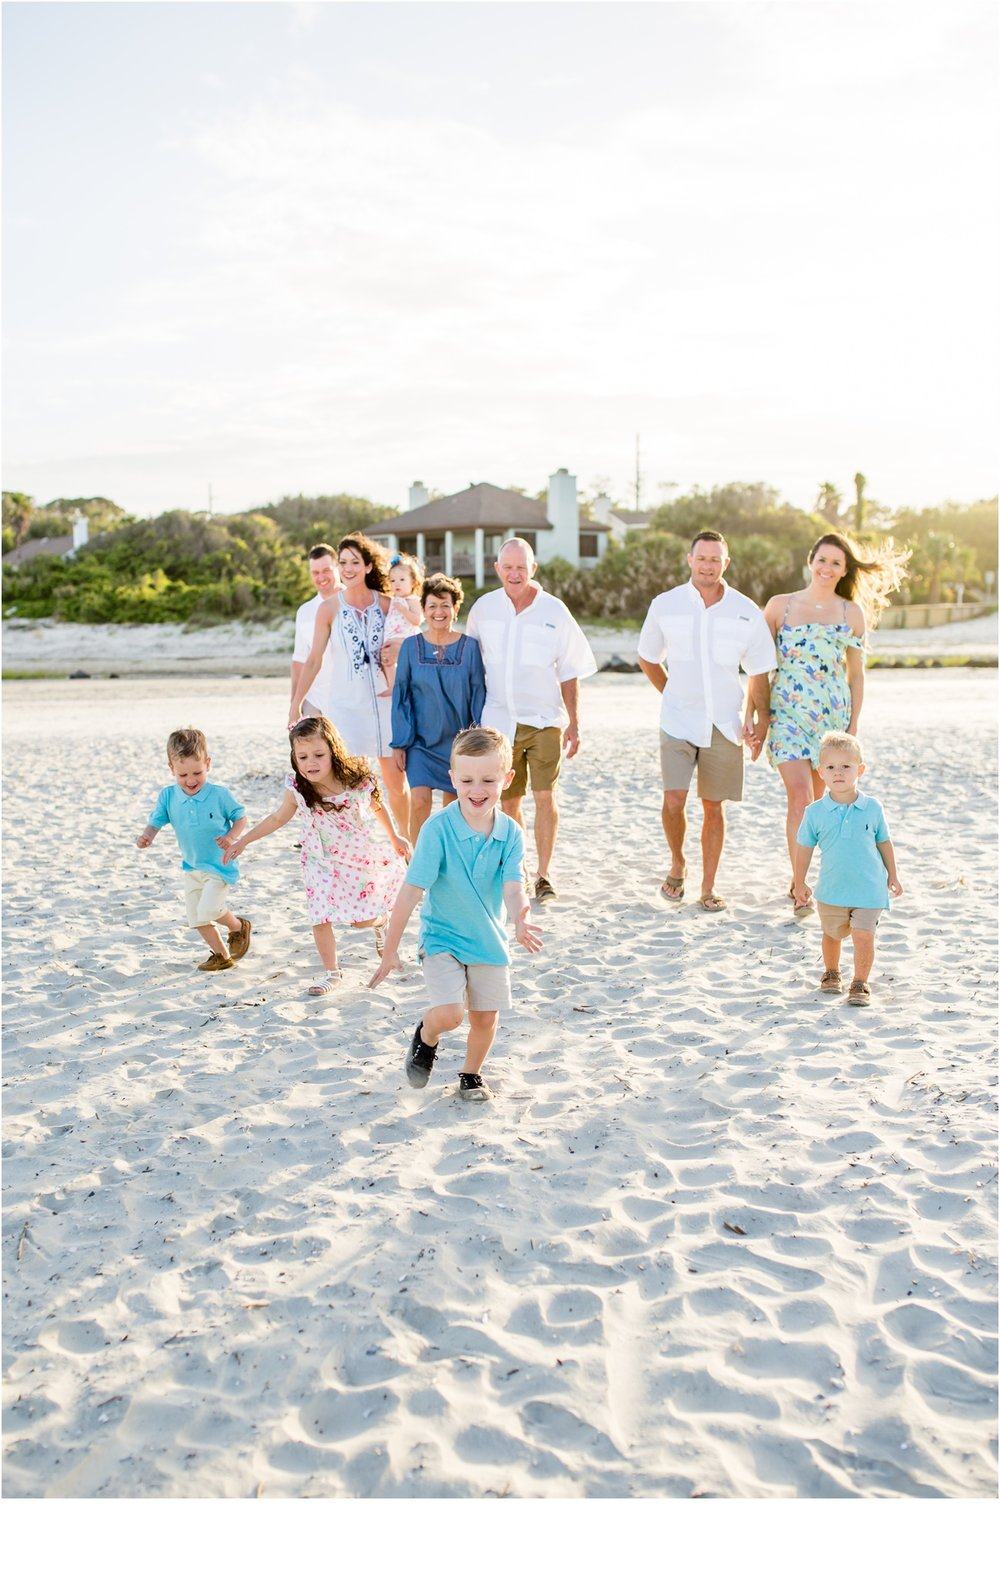 Rainey_Gregg_Photography_St._Simons_Island_Georgia_California_Wedding_Portrait_Photography_0937.jpg